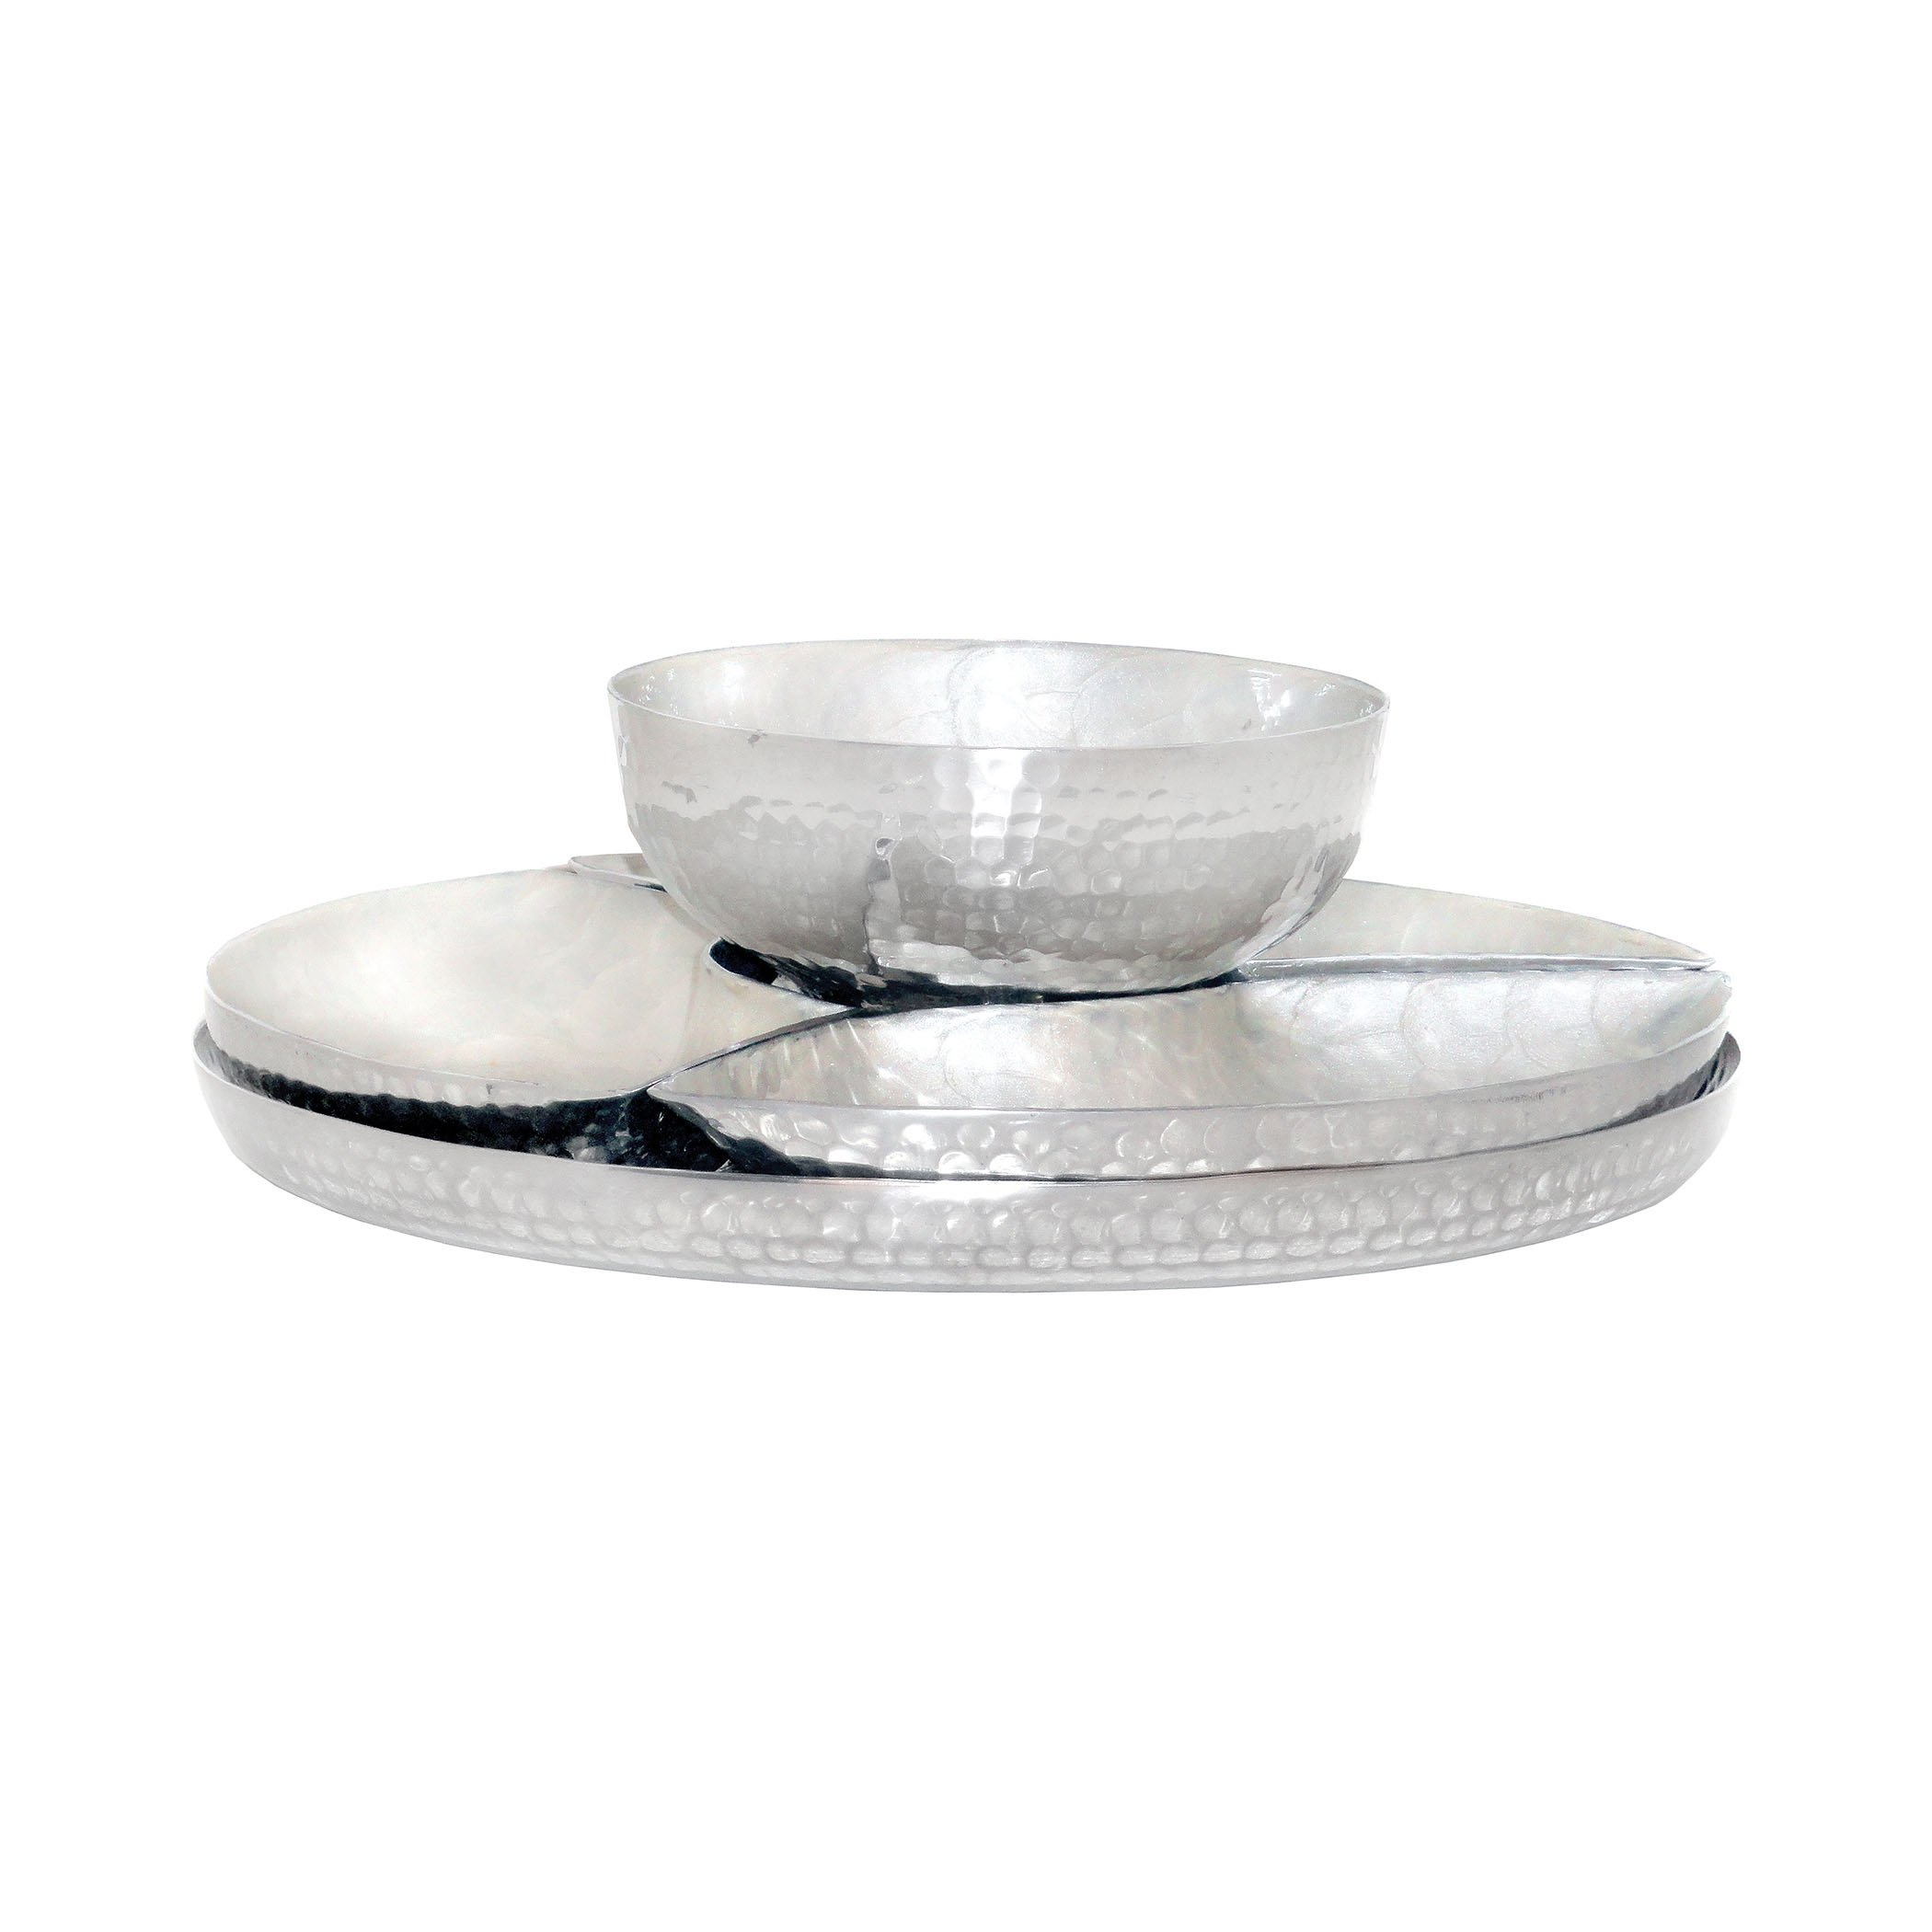 OKSLO Reef chip and dip bowl 608452